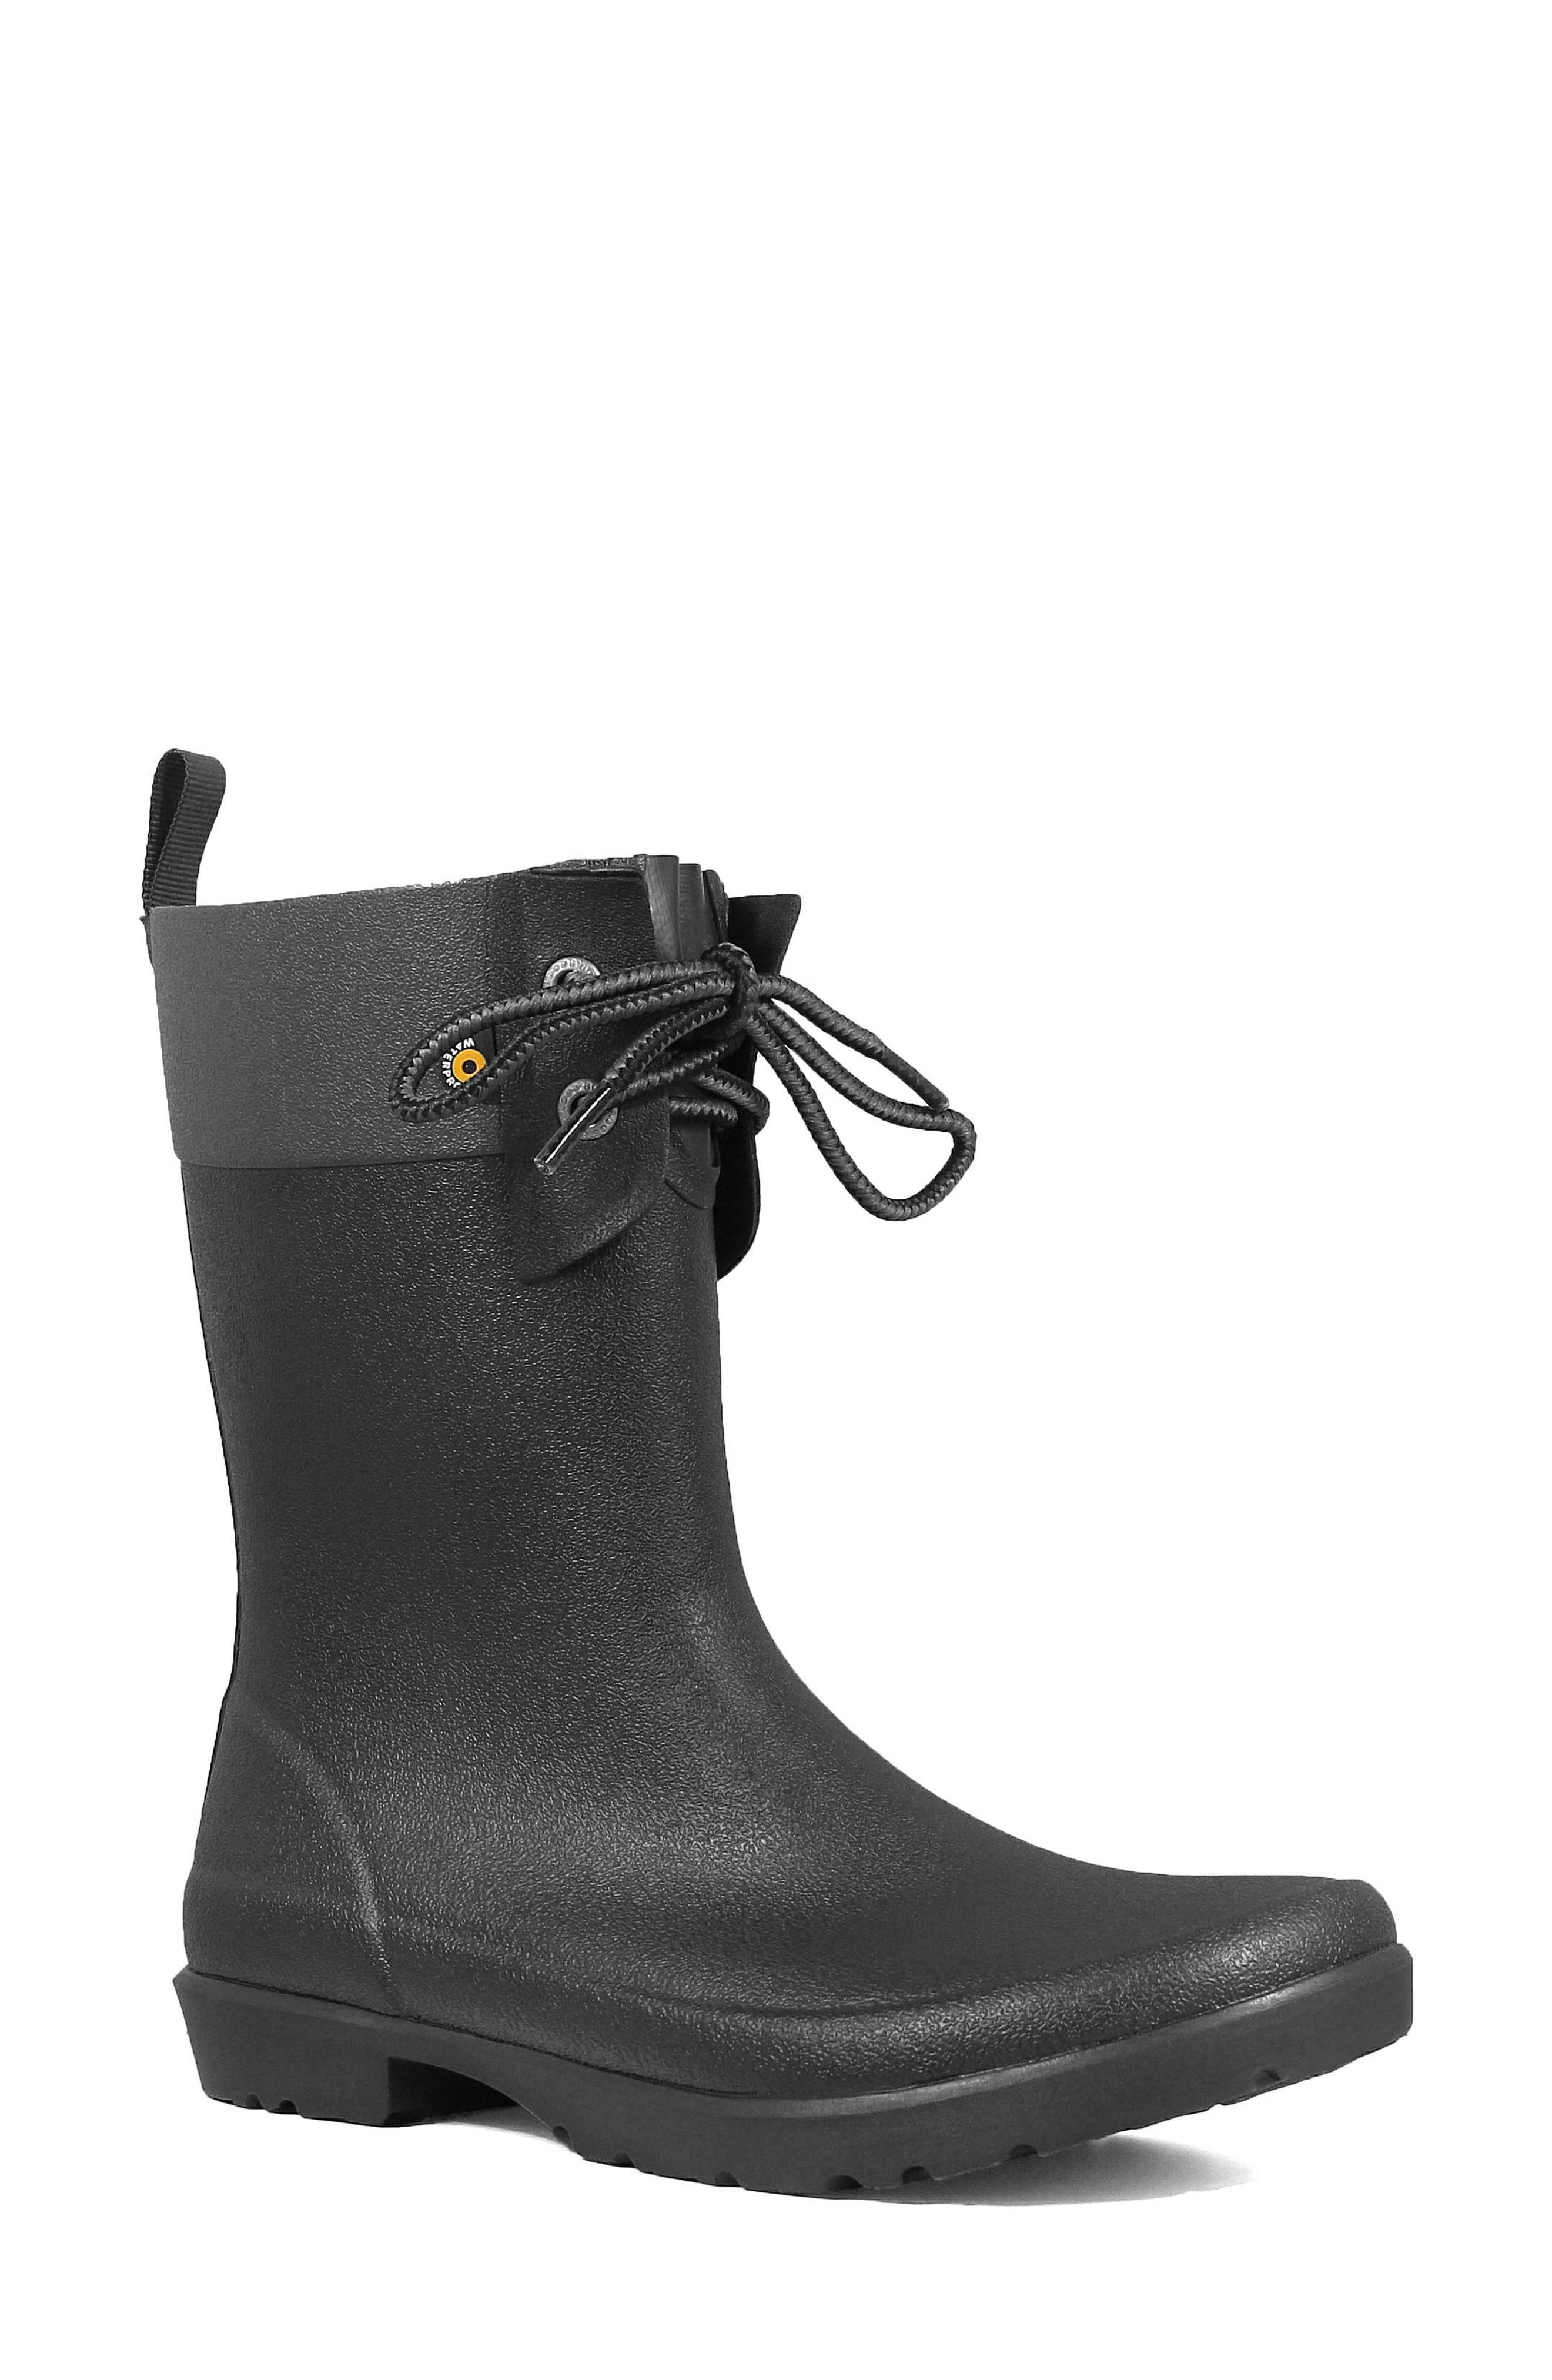 Floral Lace-Up Waterproof Rain Boot